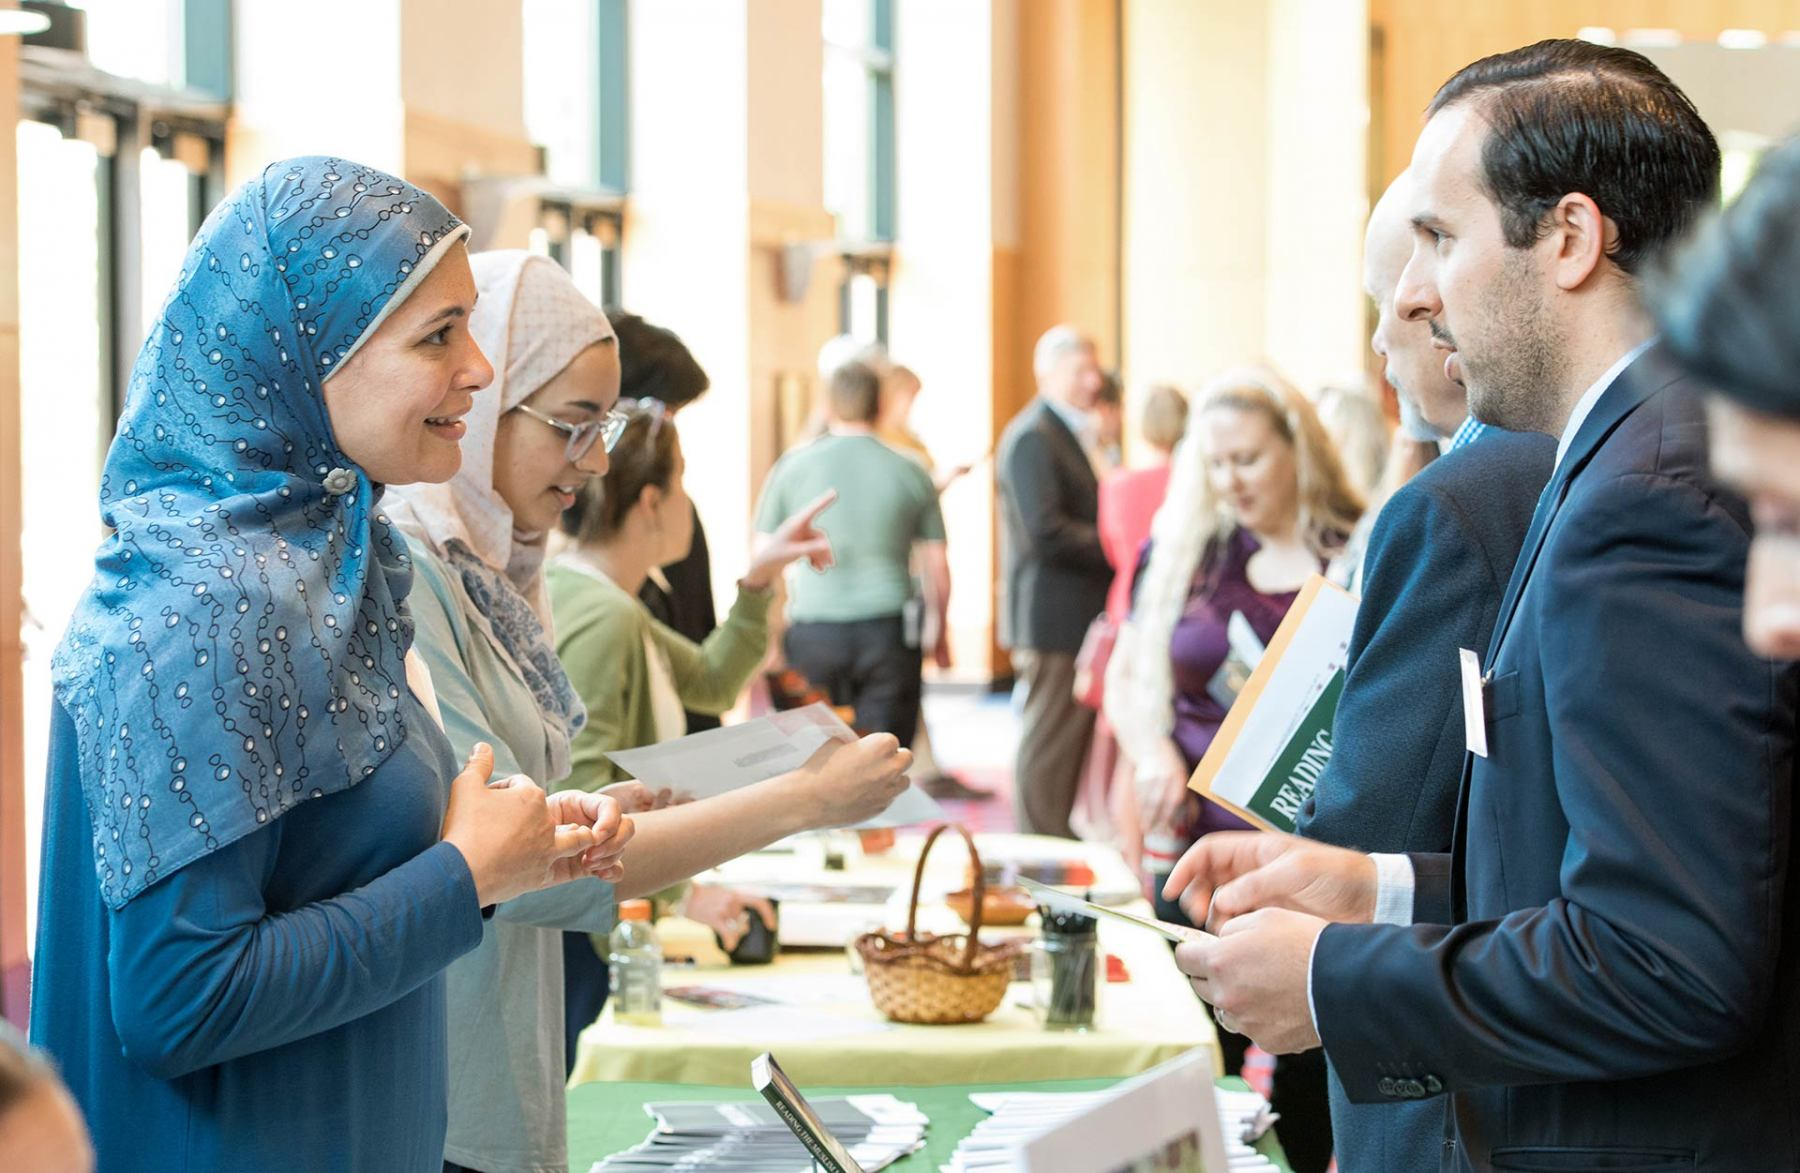 04_annual-meeting-event-photography-portland-oregon-04